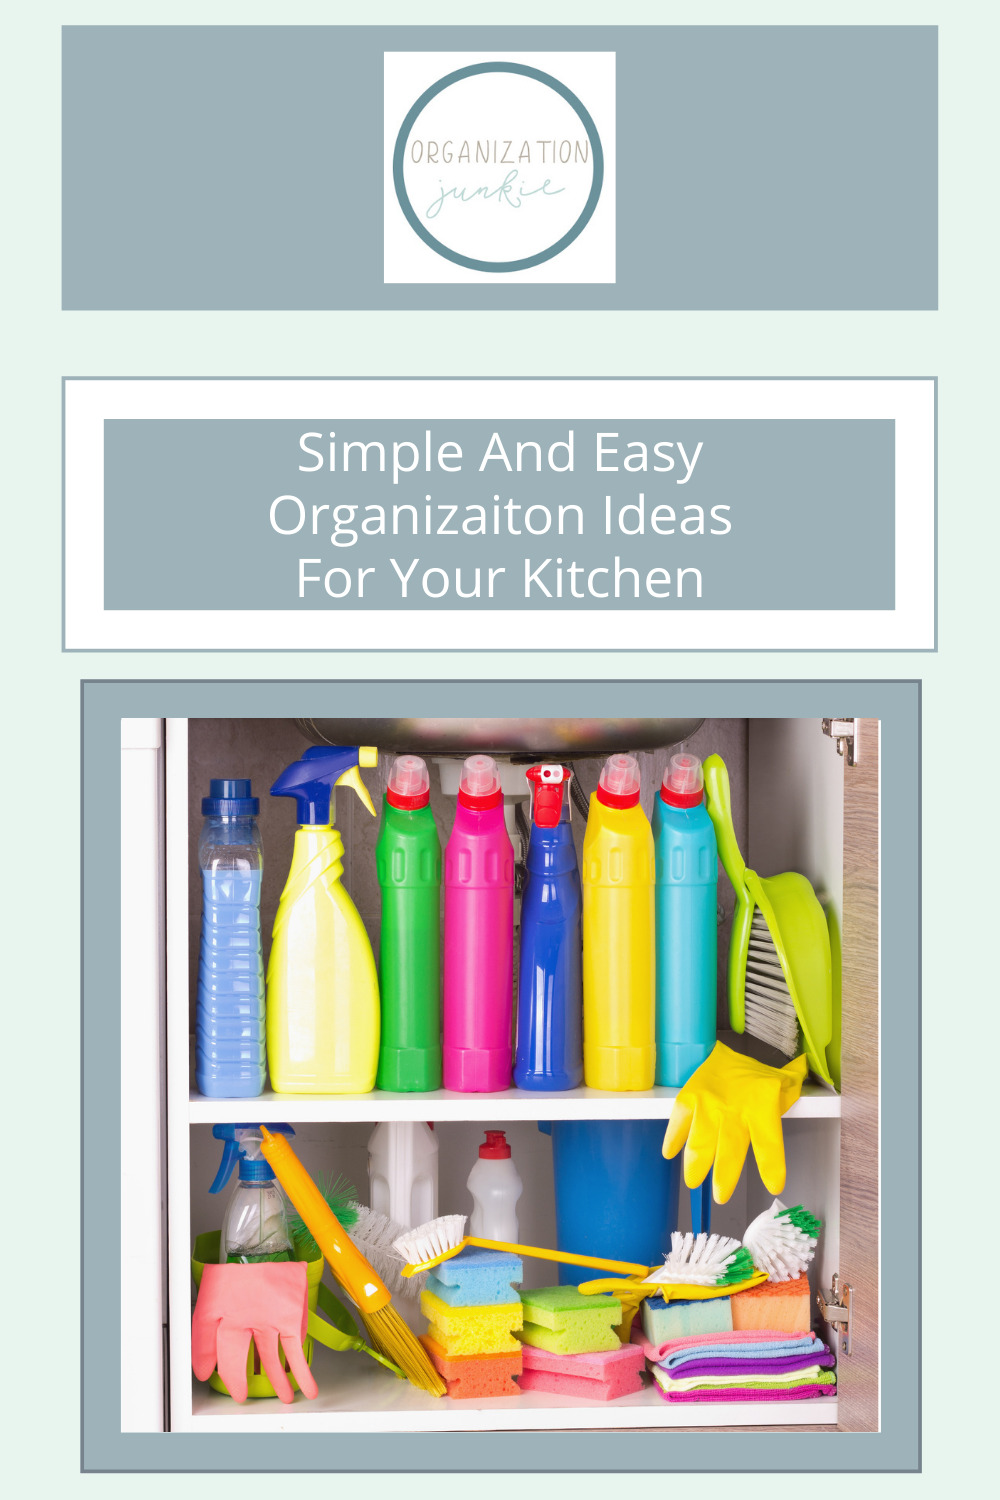 Organizationjunkie.com has all of the cleaning and organization solutions you've been missing in your life. Tackle all that tricky clutter you've been putting off right away. Keep your kitchen tidy with these simple organization hacks!